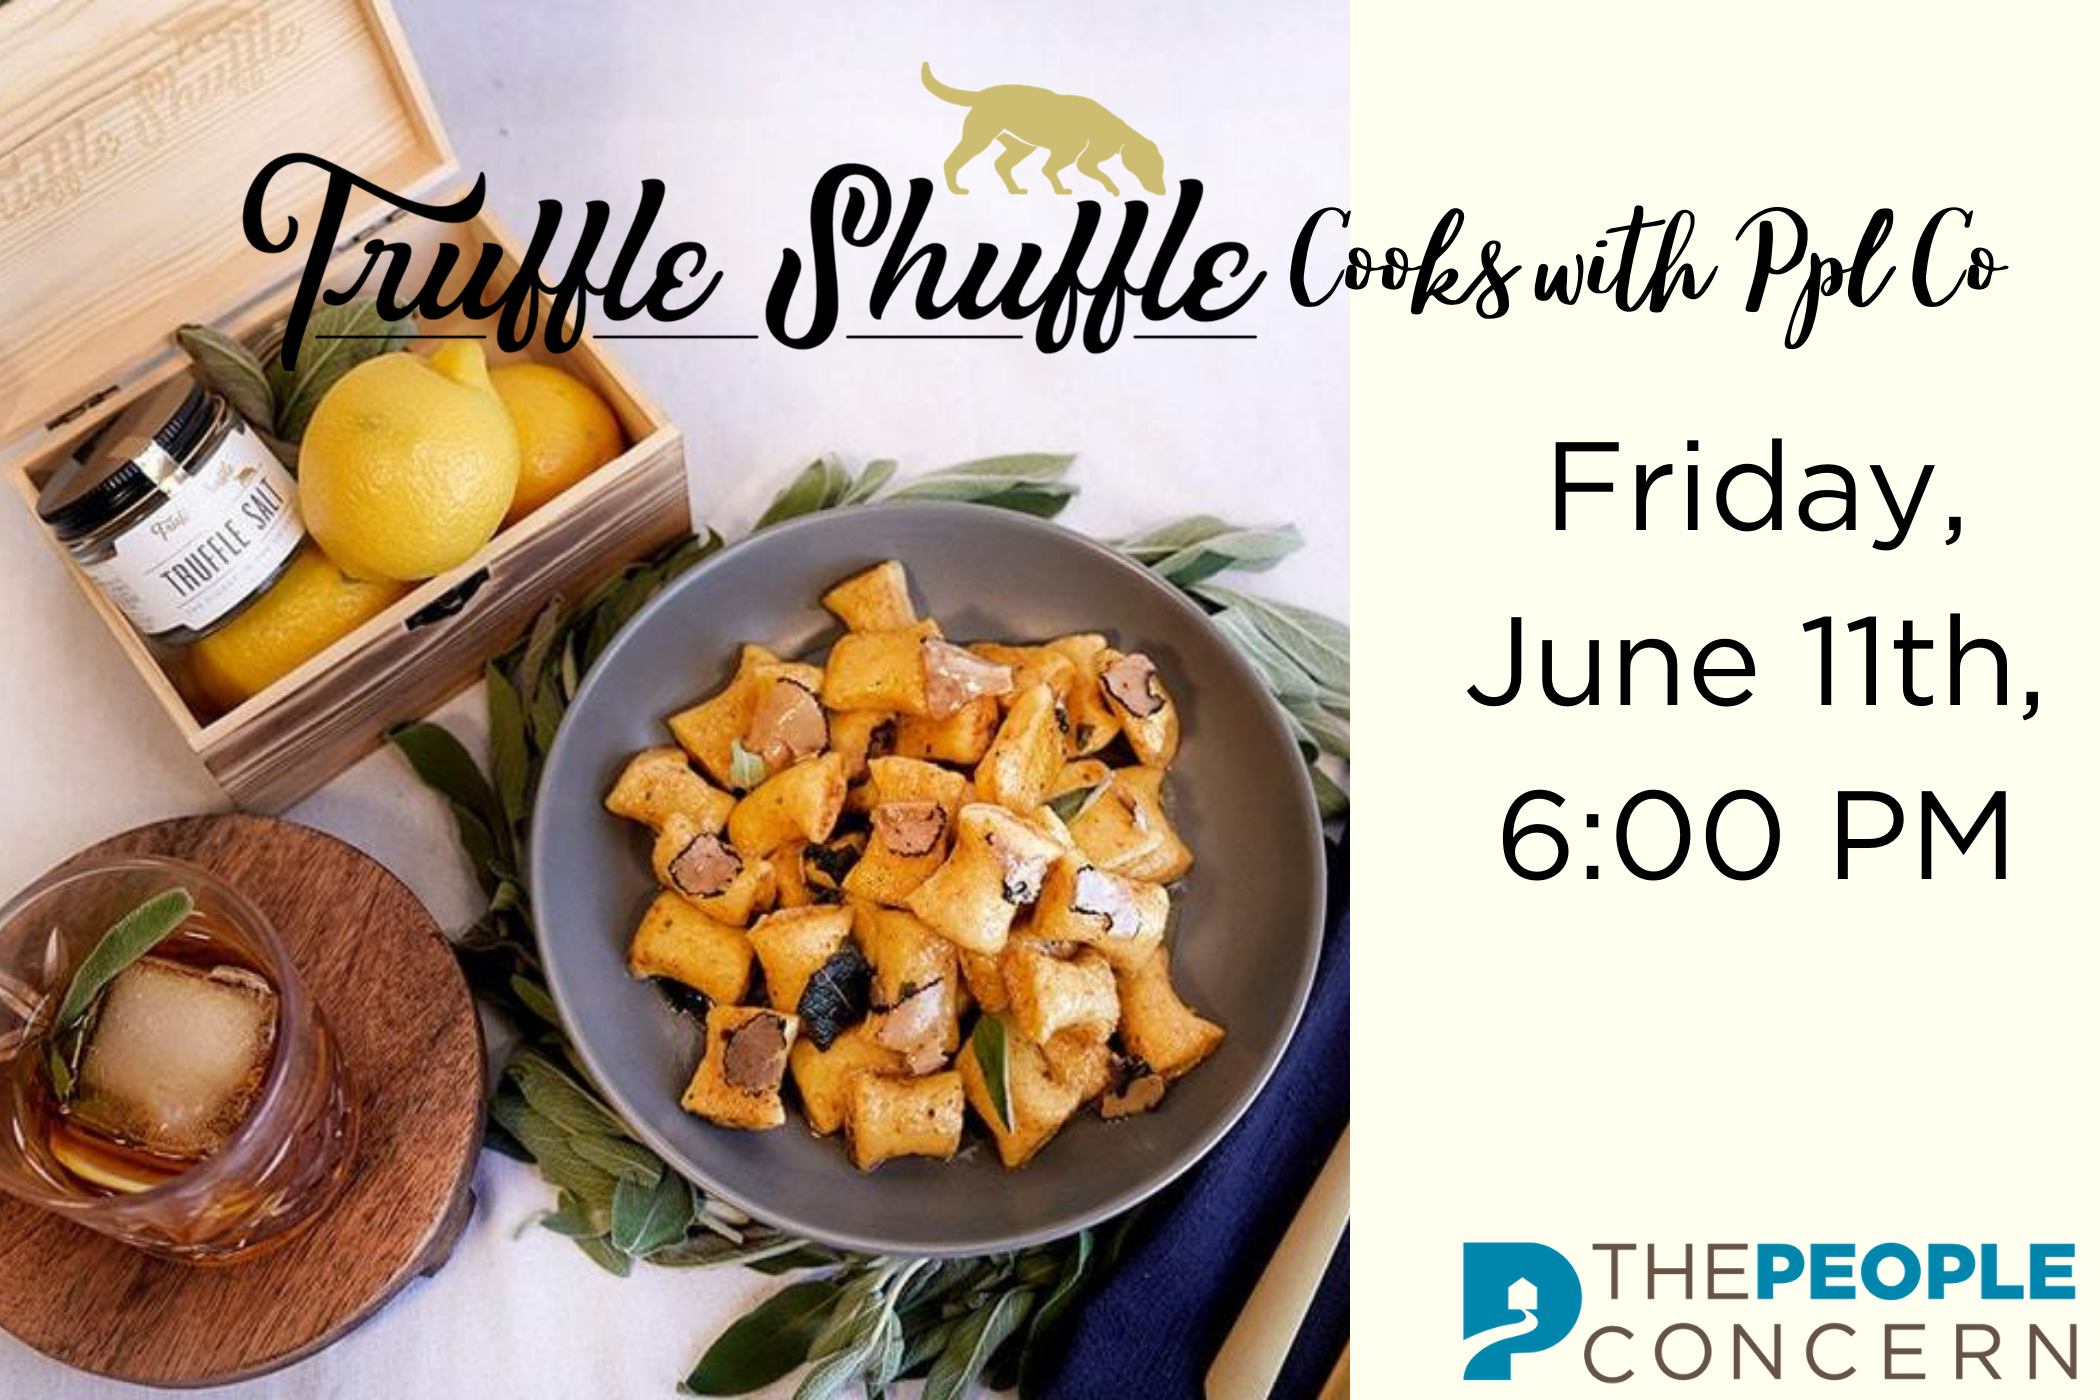 Truffle Shuffle Cooks with Ppl Co